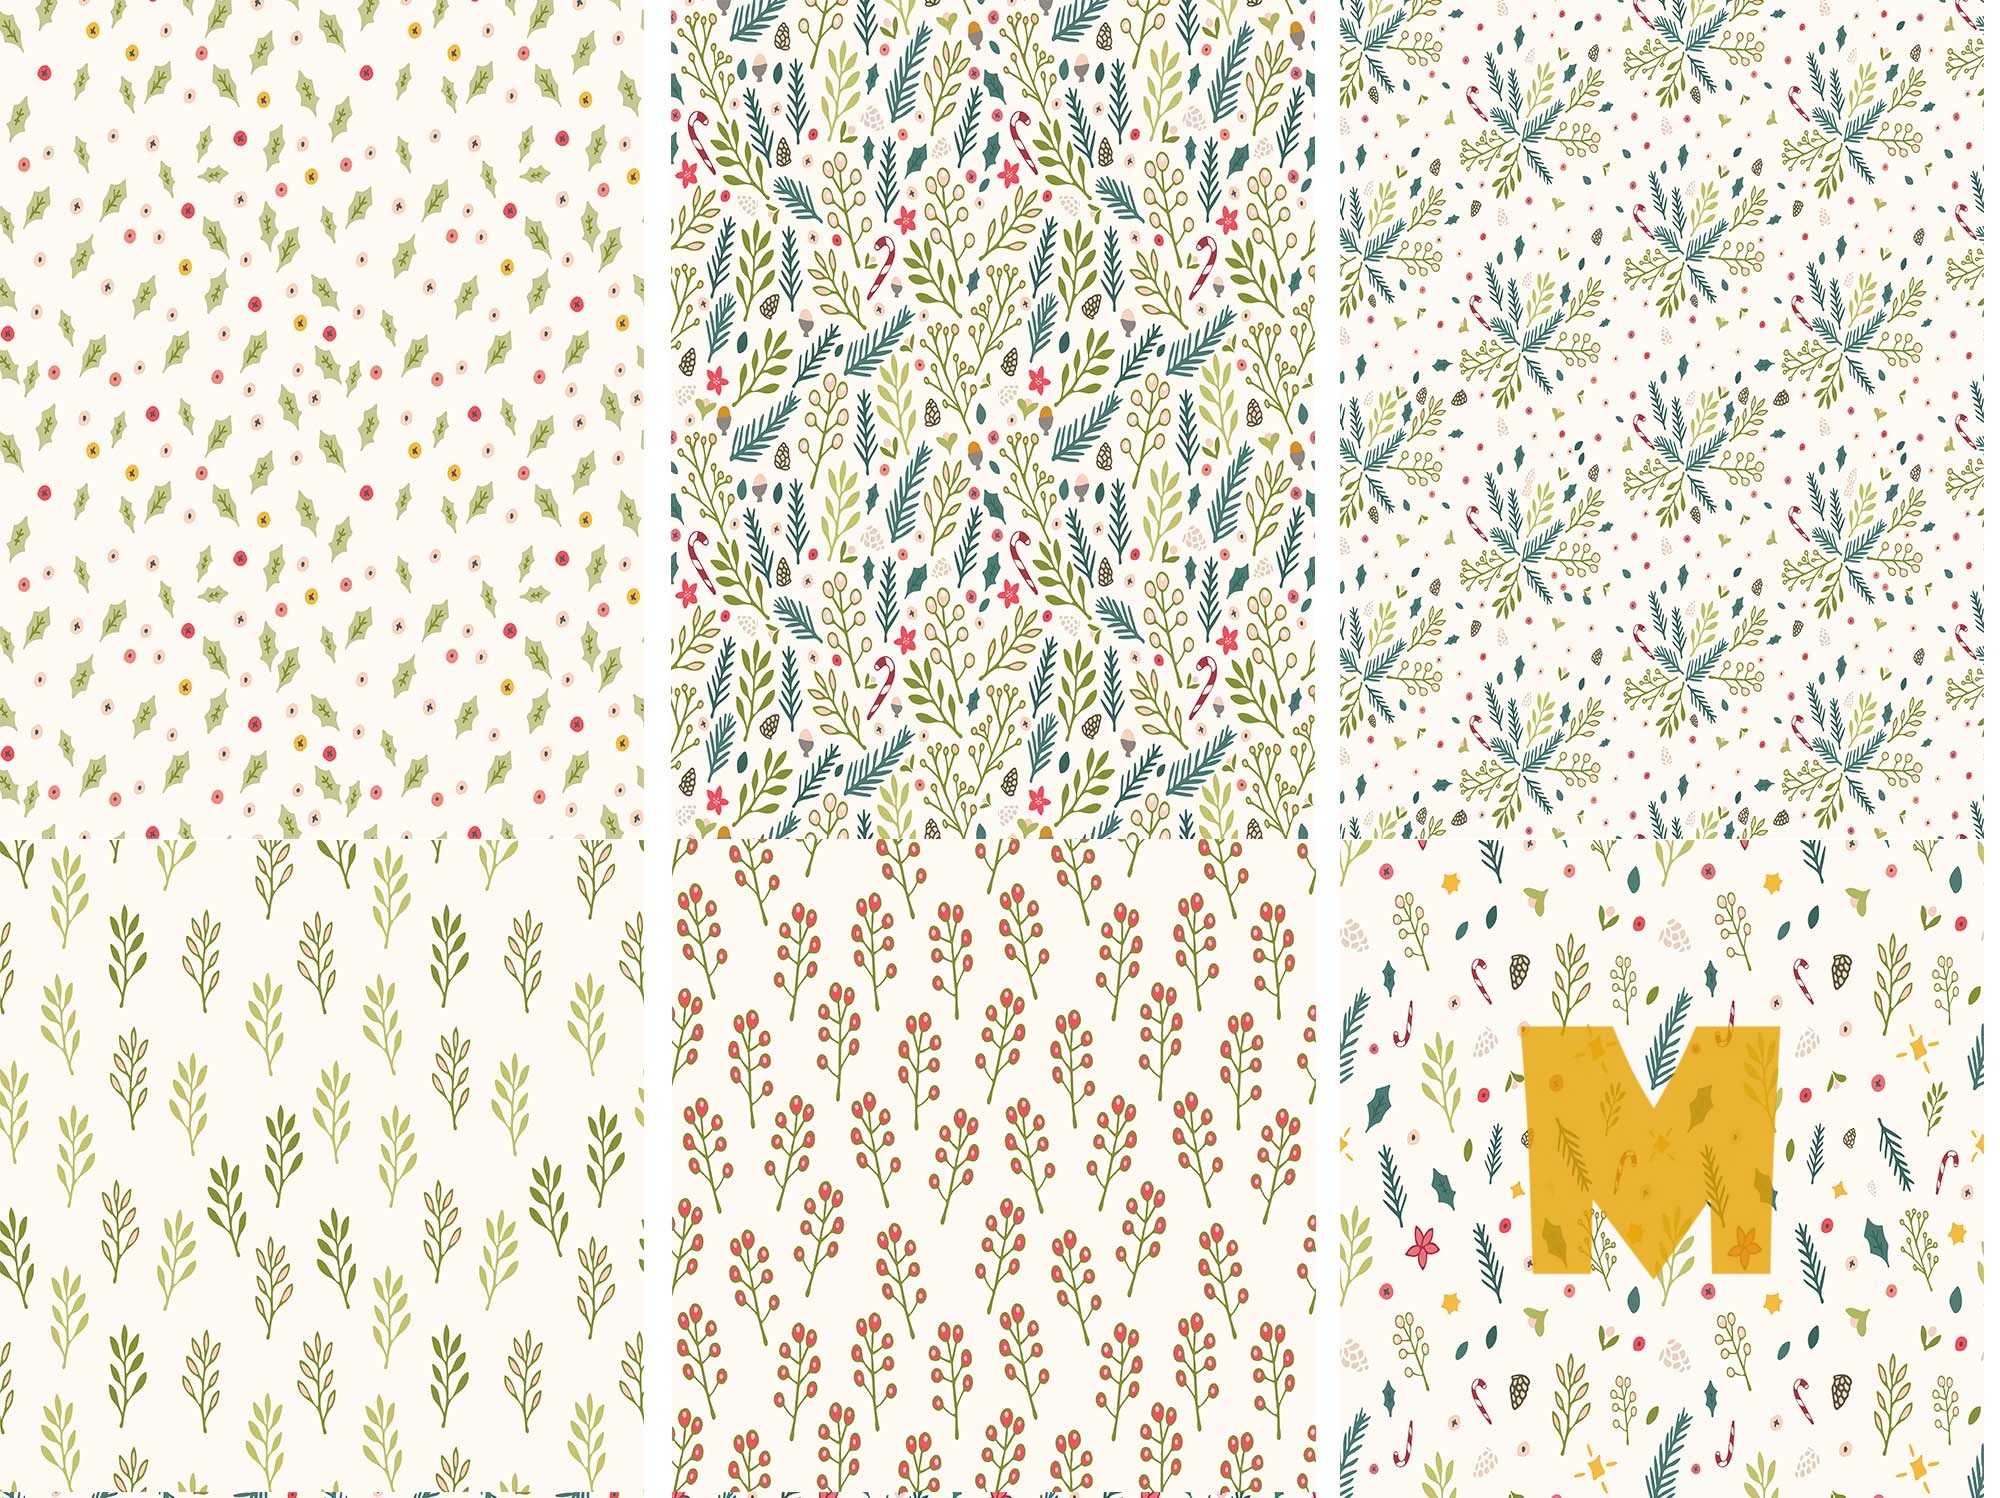 Winter Floral Patterns